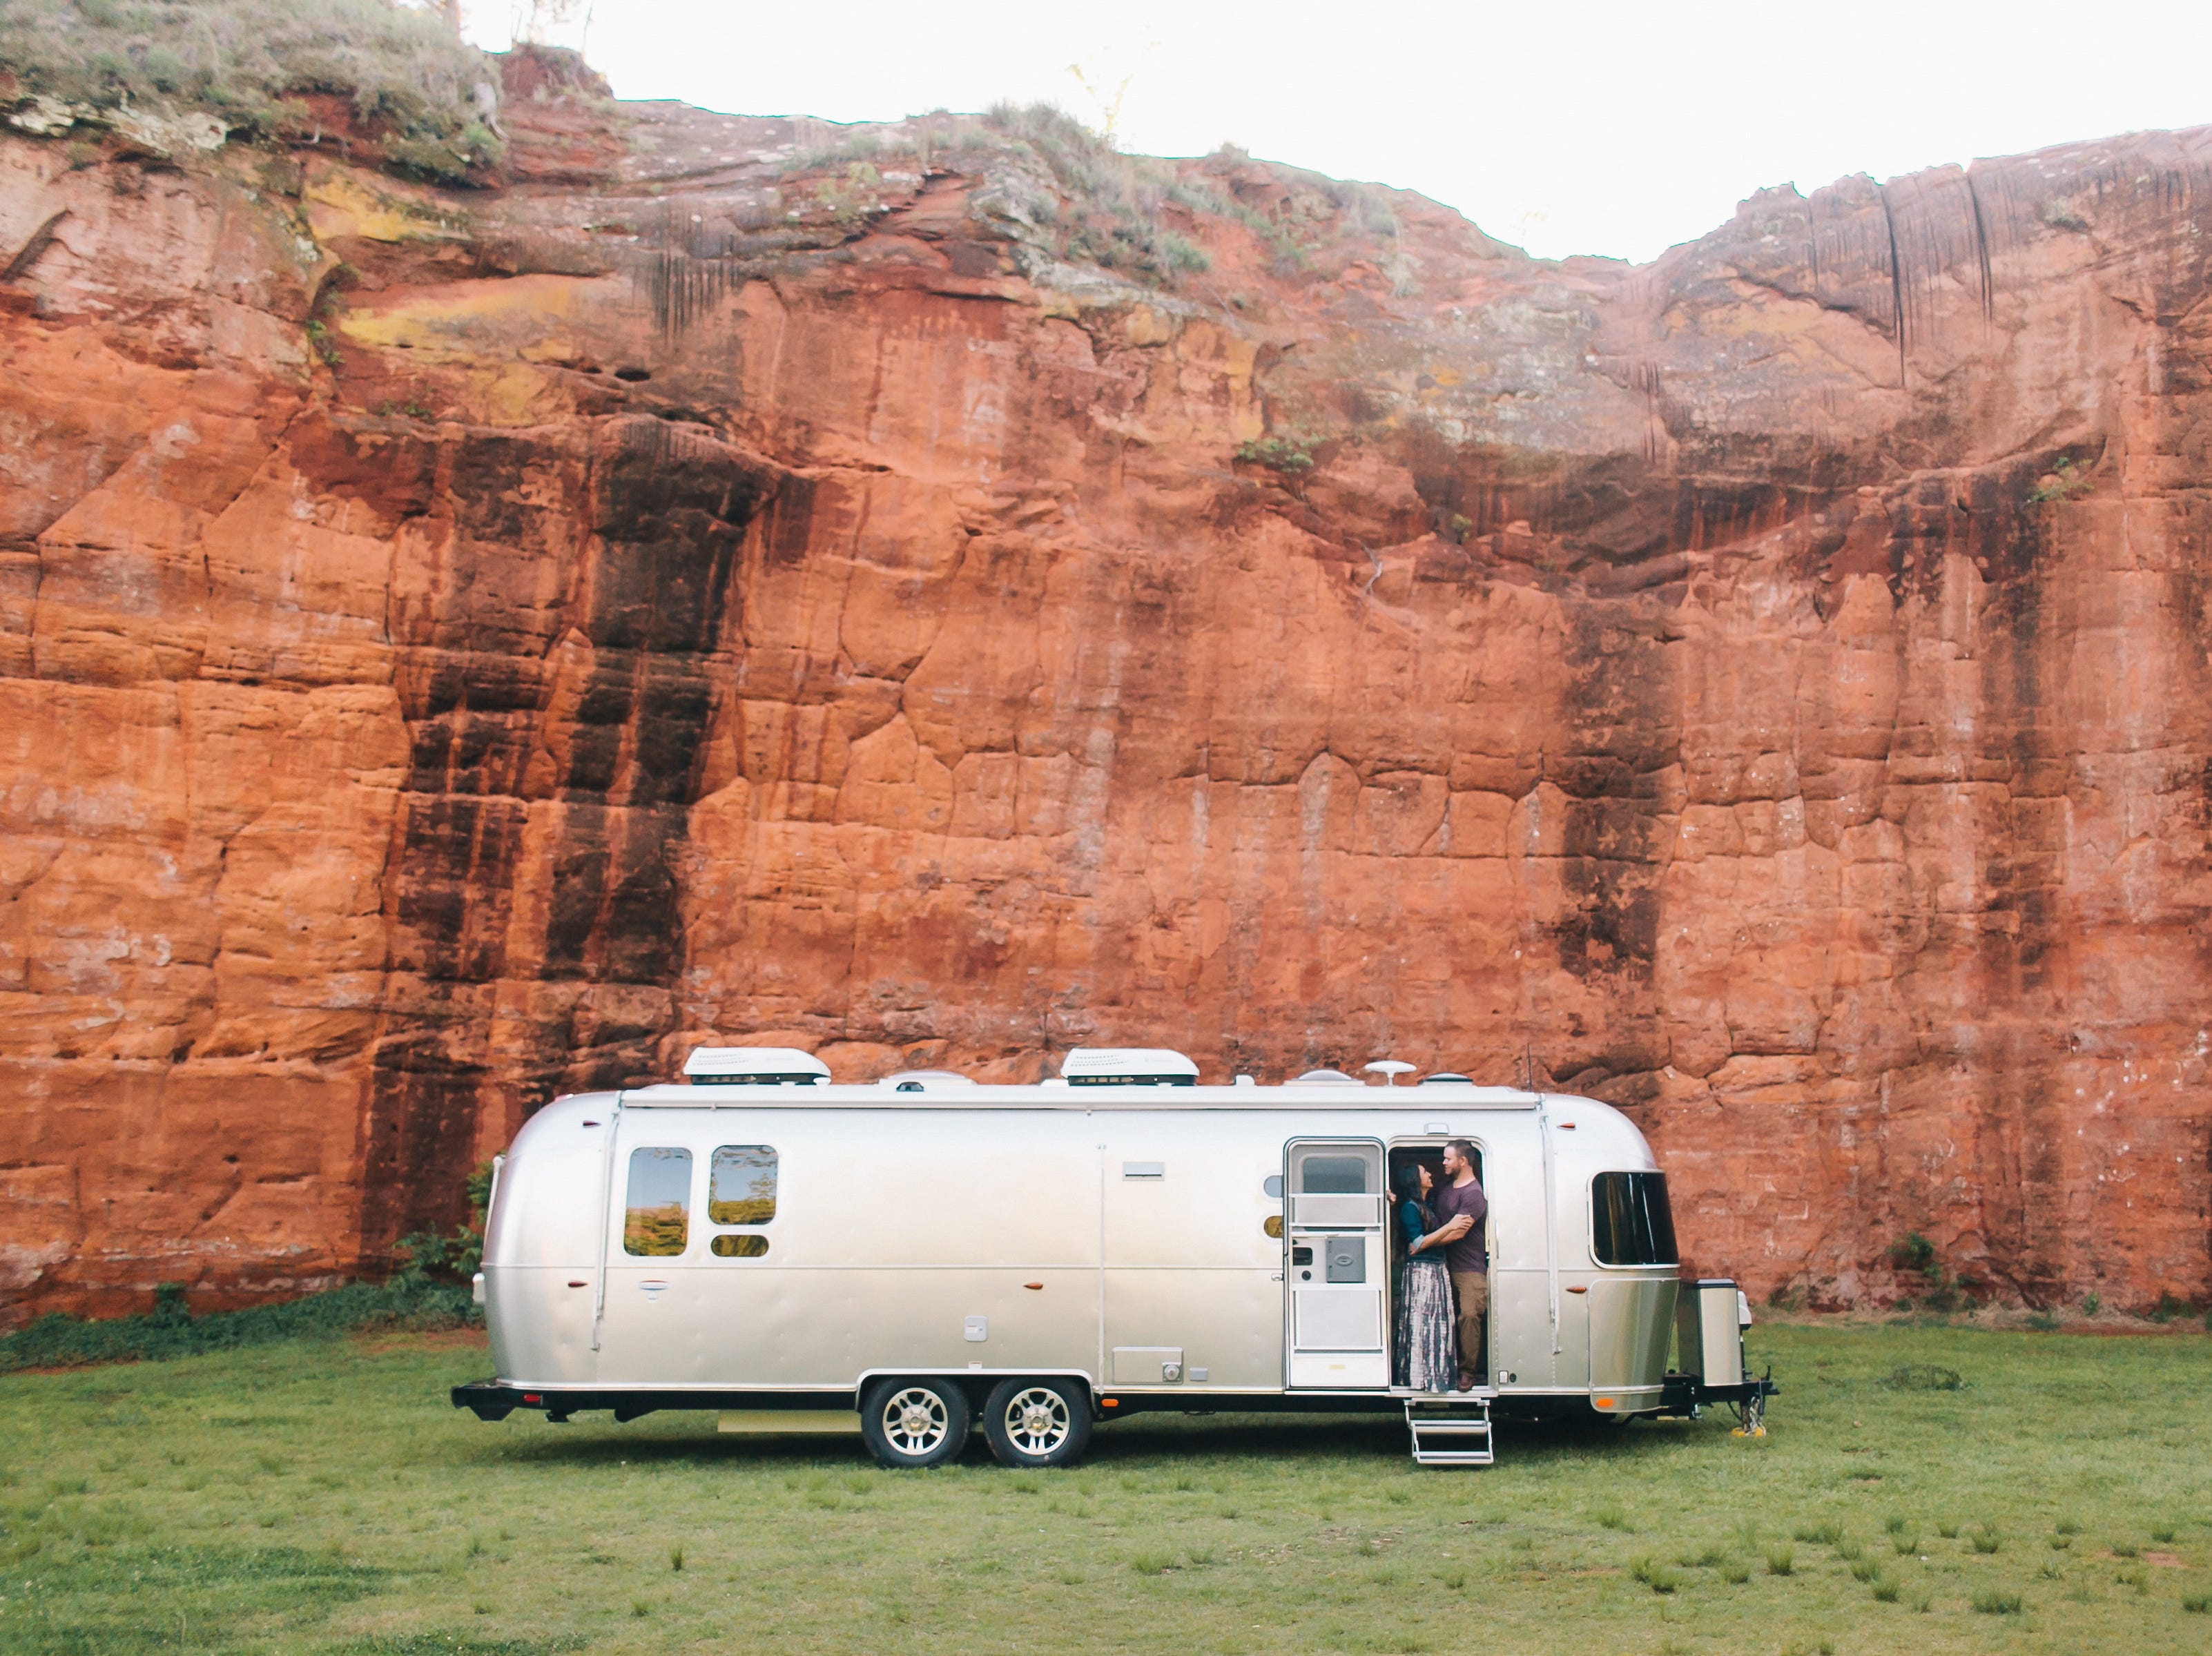 Oklahoma couple Tanner and Nelly Bean live in their Airstream full-time.